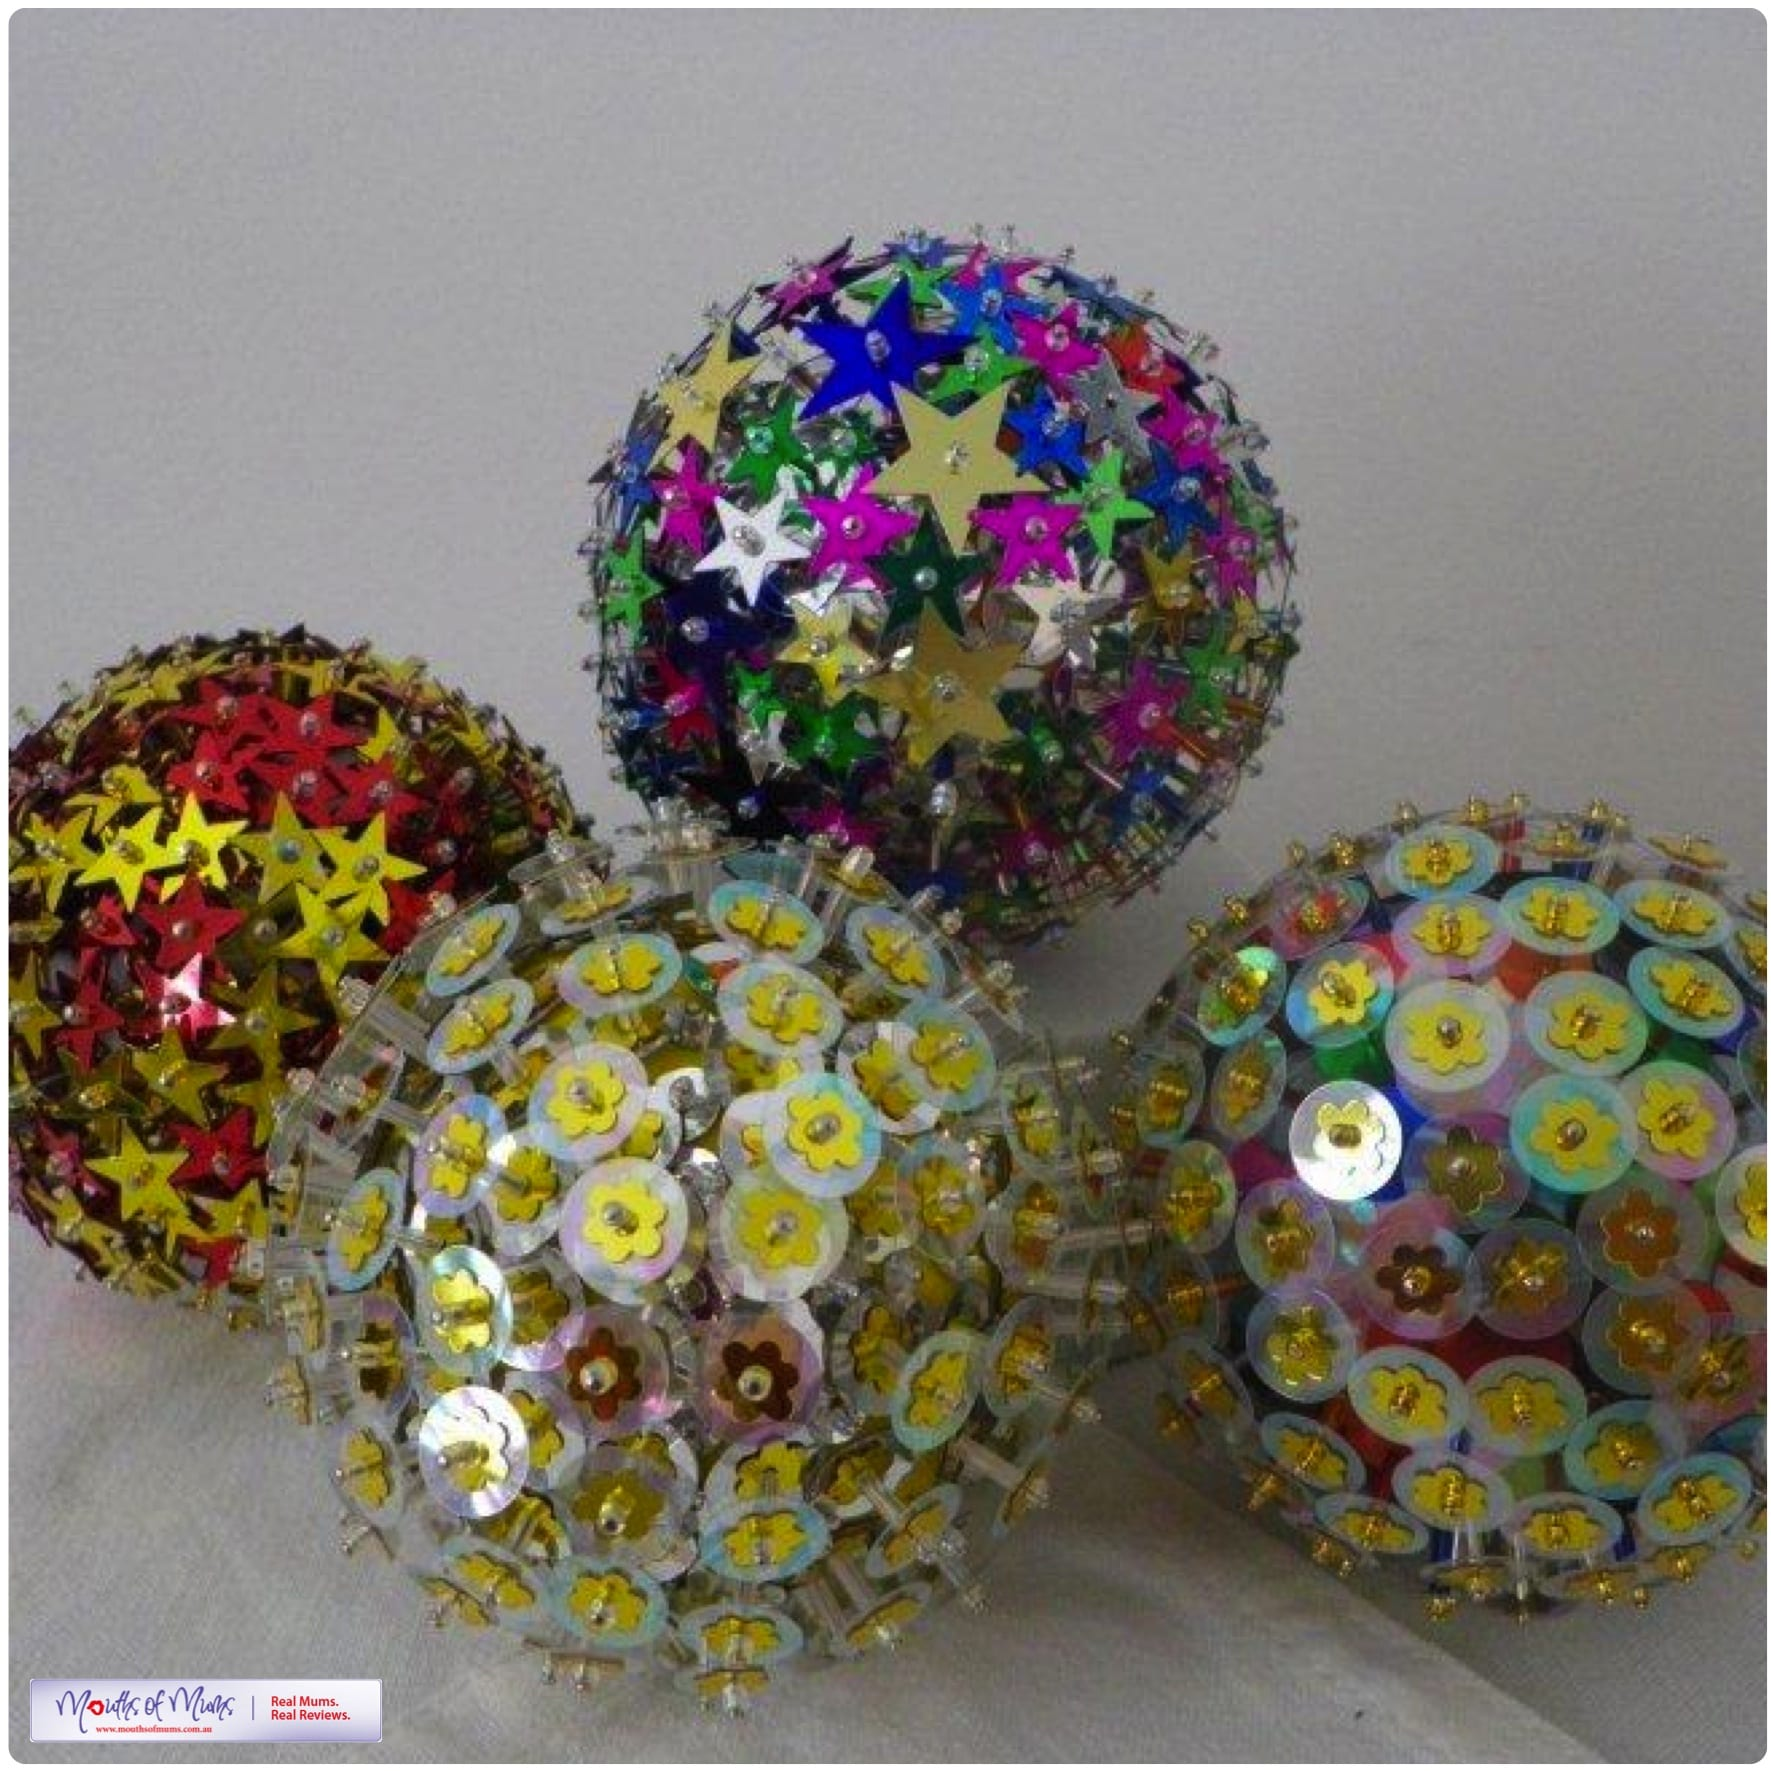 DIY Sequin amp Bead Christmas Balls Mouths of Mums : Slide13 from www.mouthsofmums.com.au size 1771 x 1771 jpeg 664kB